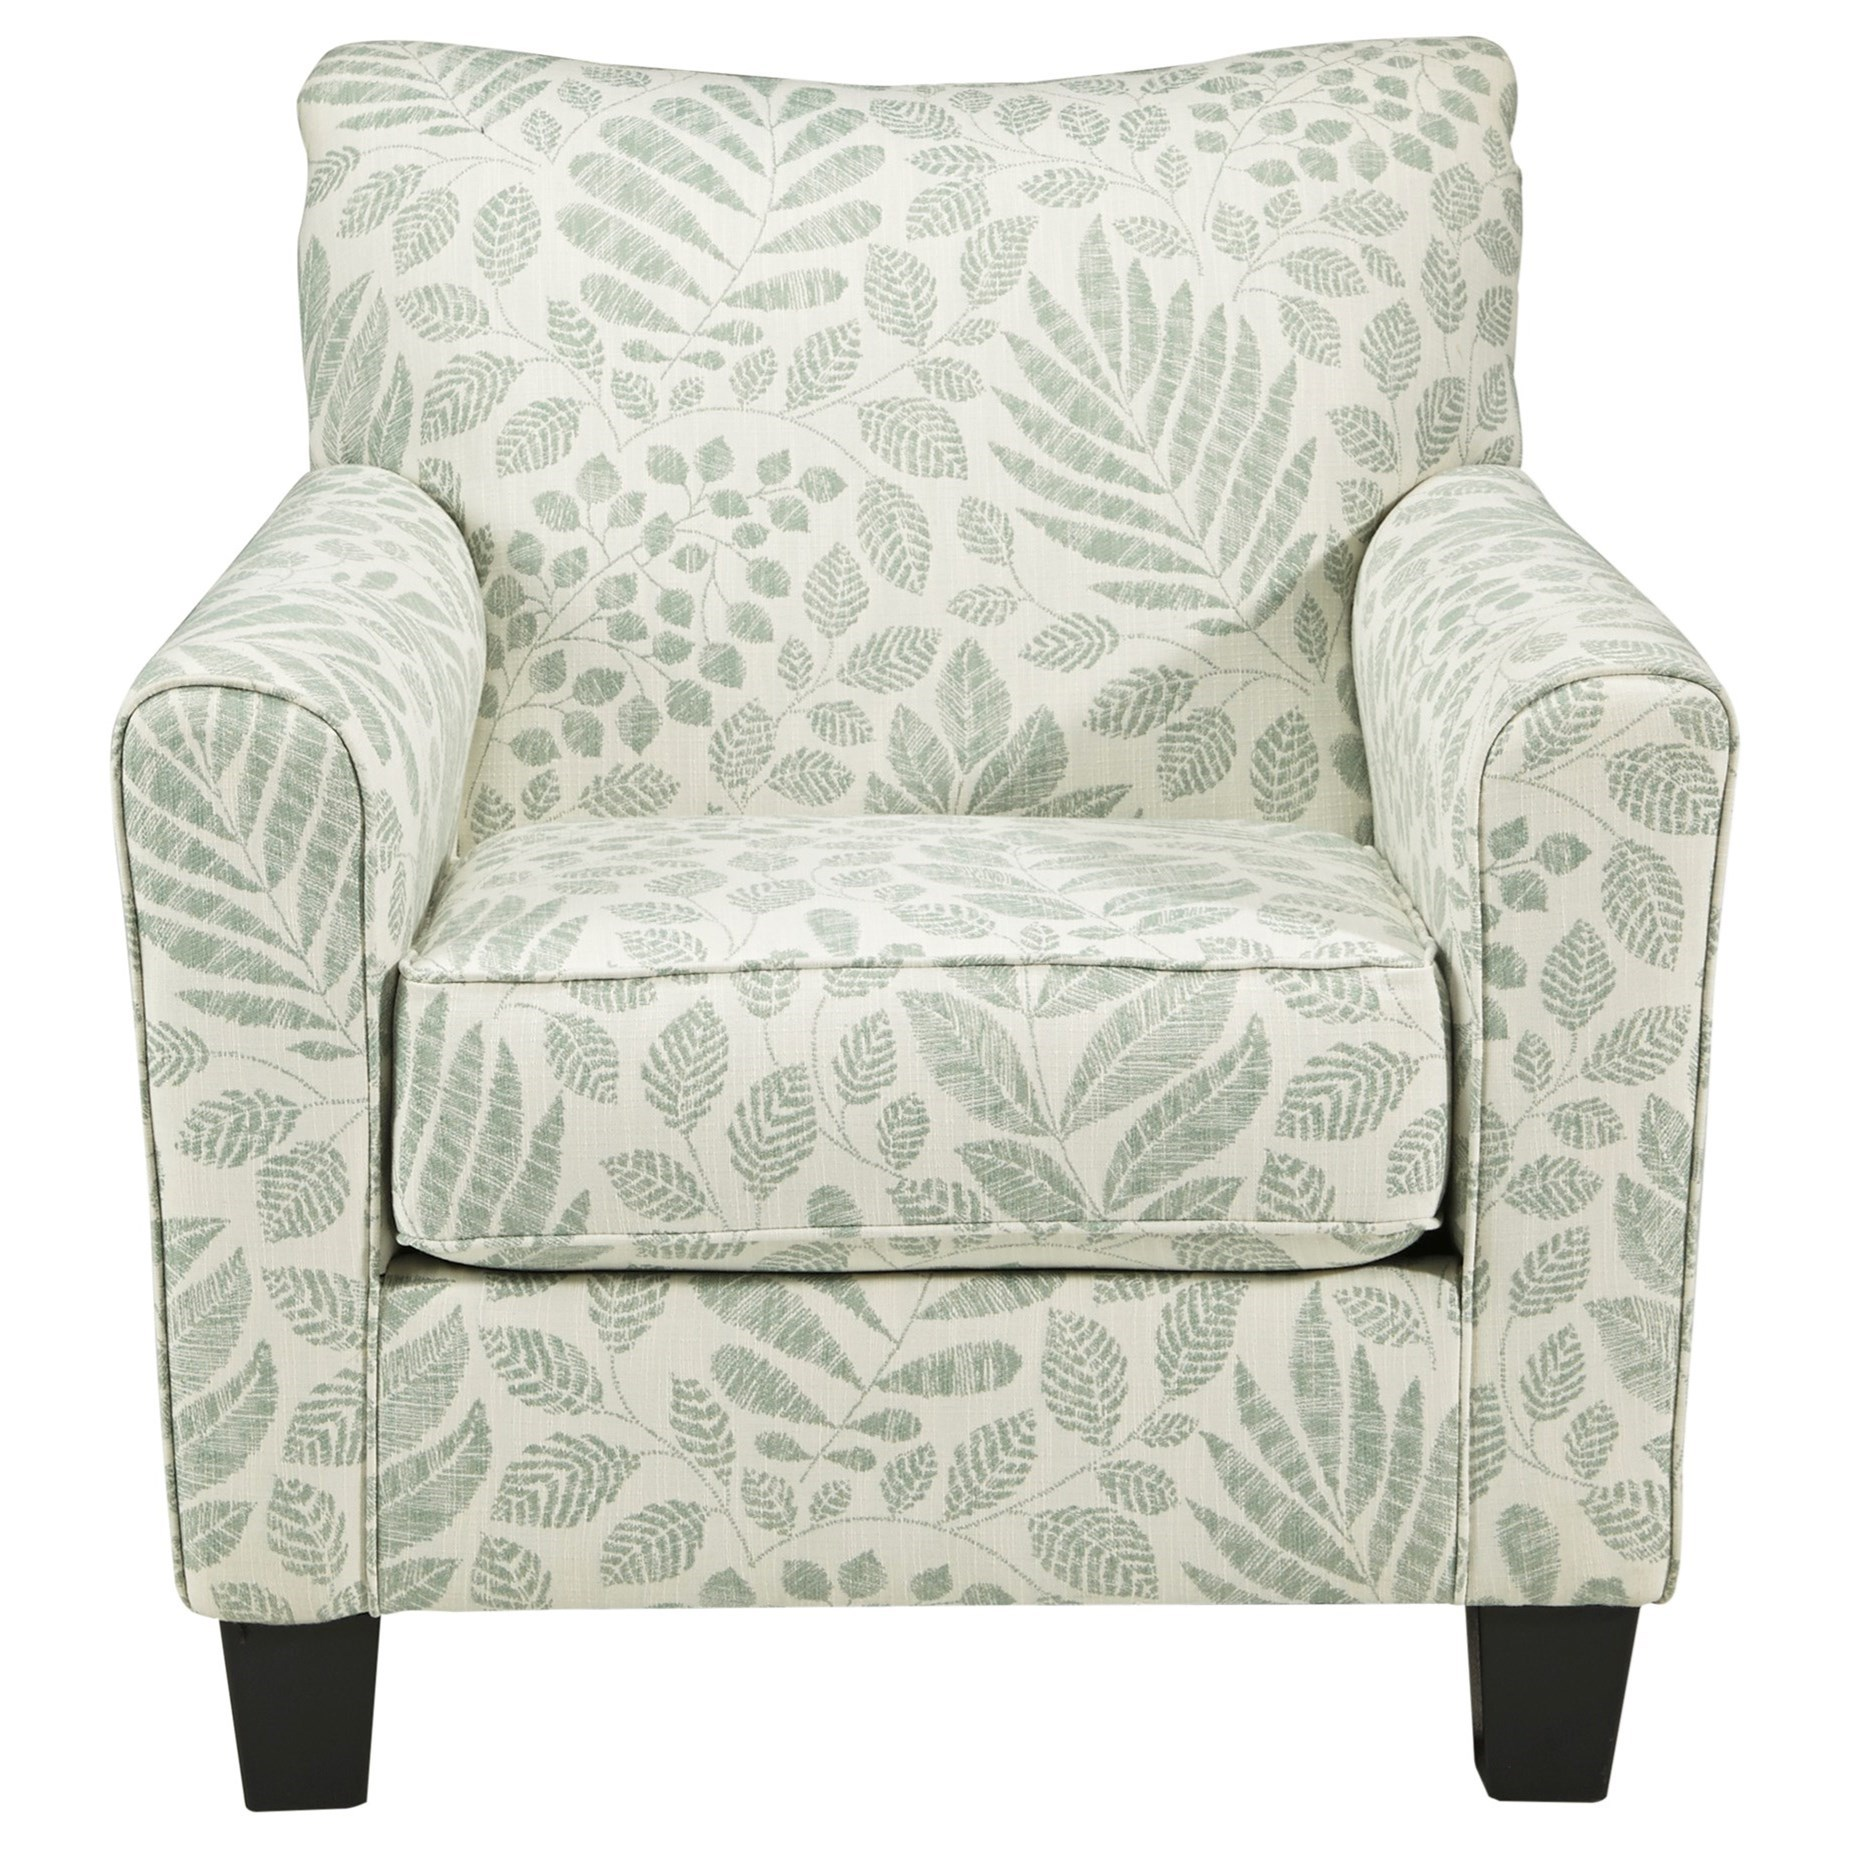 Kilarney Accent Chair by Ashley (Signature Design) at Johnny Janosik